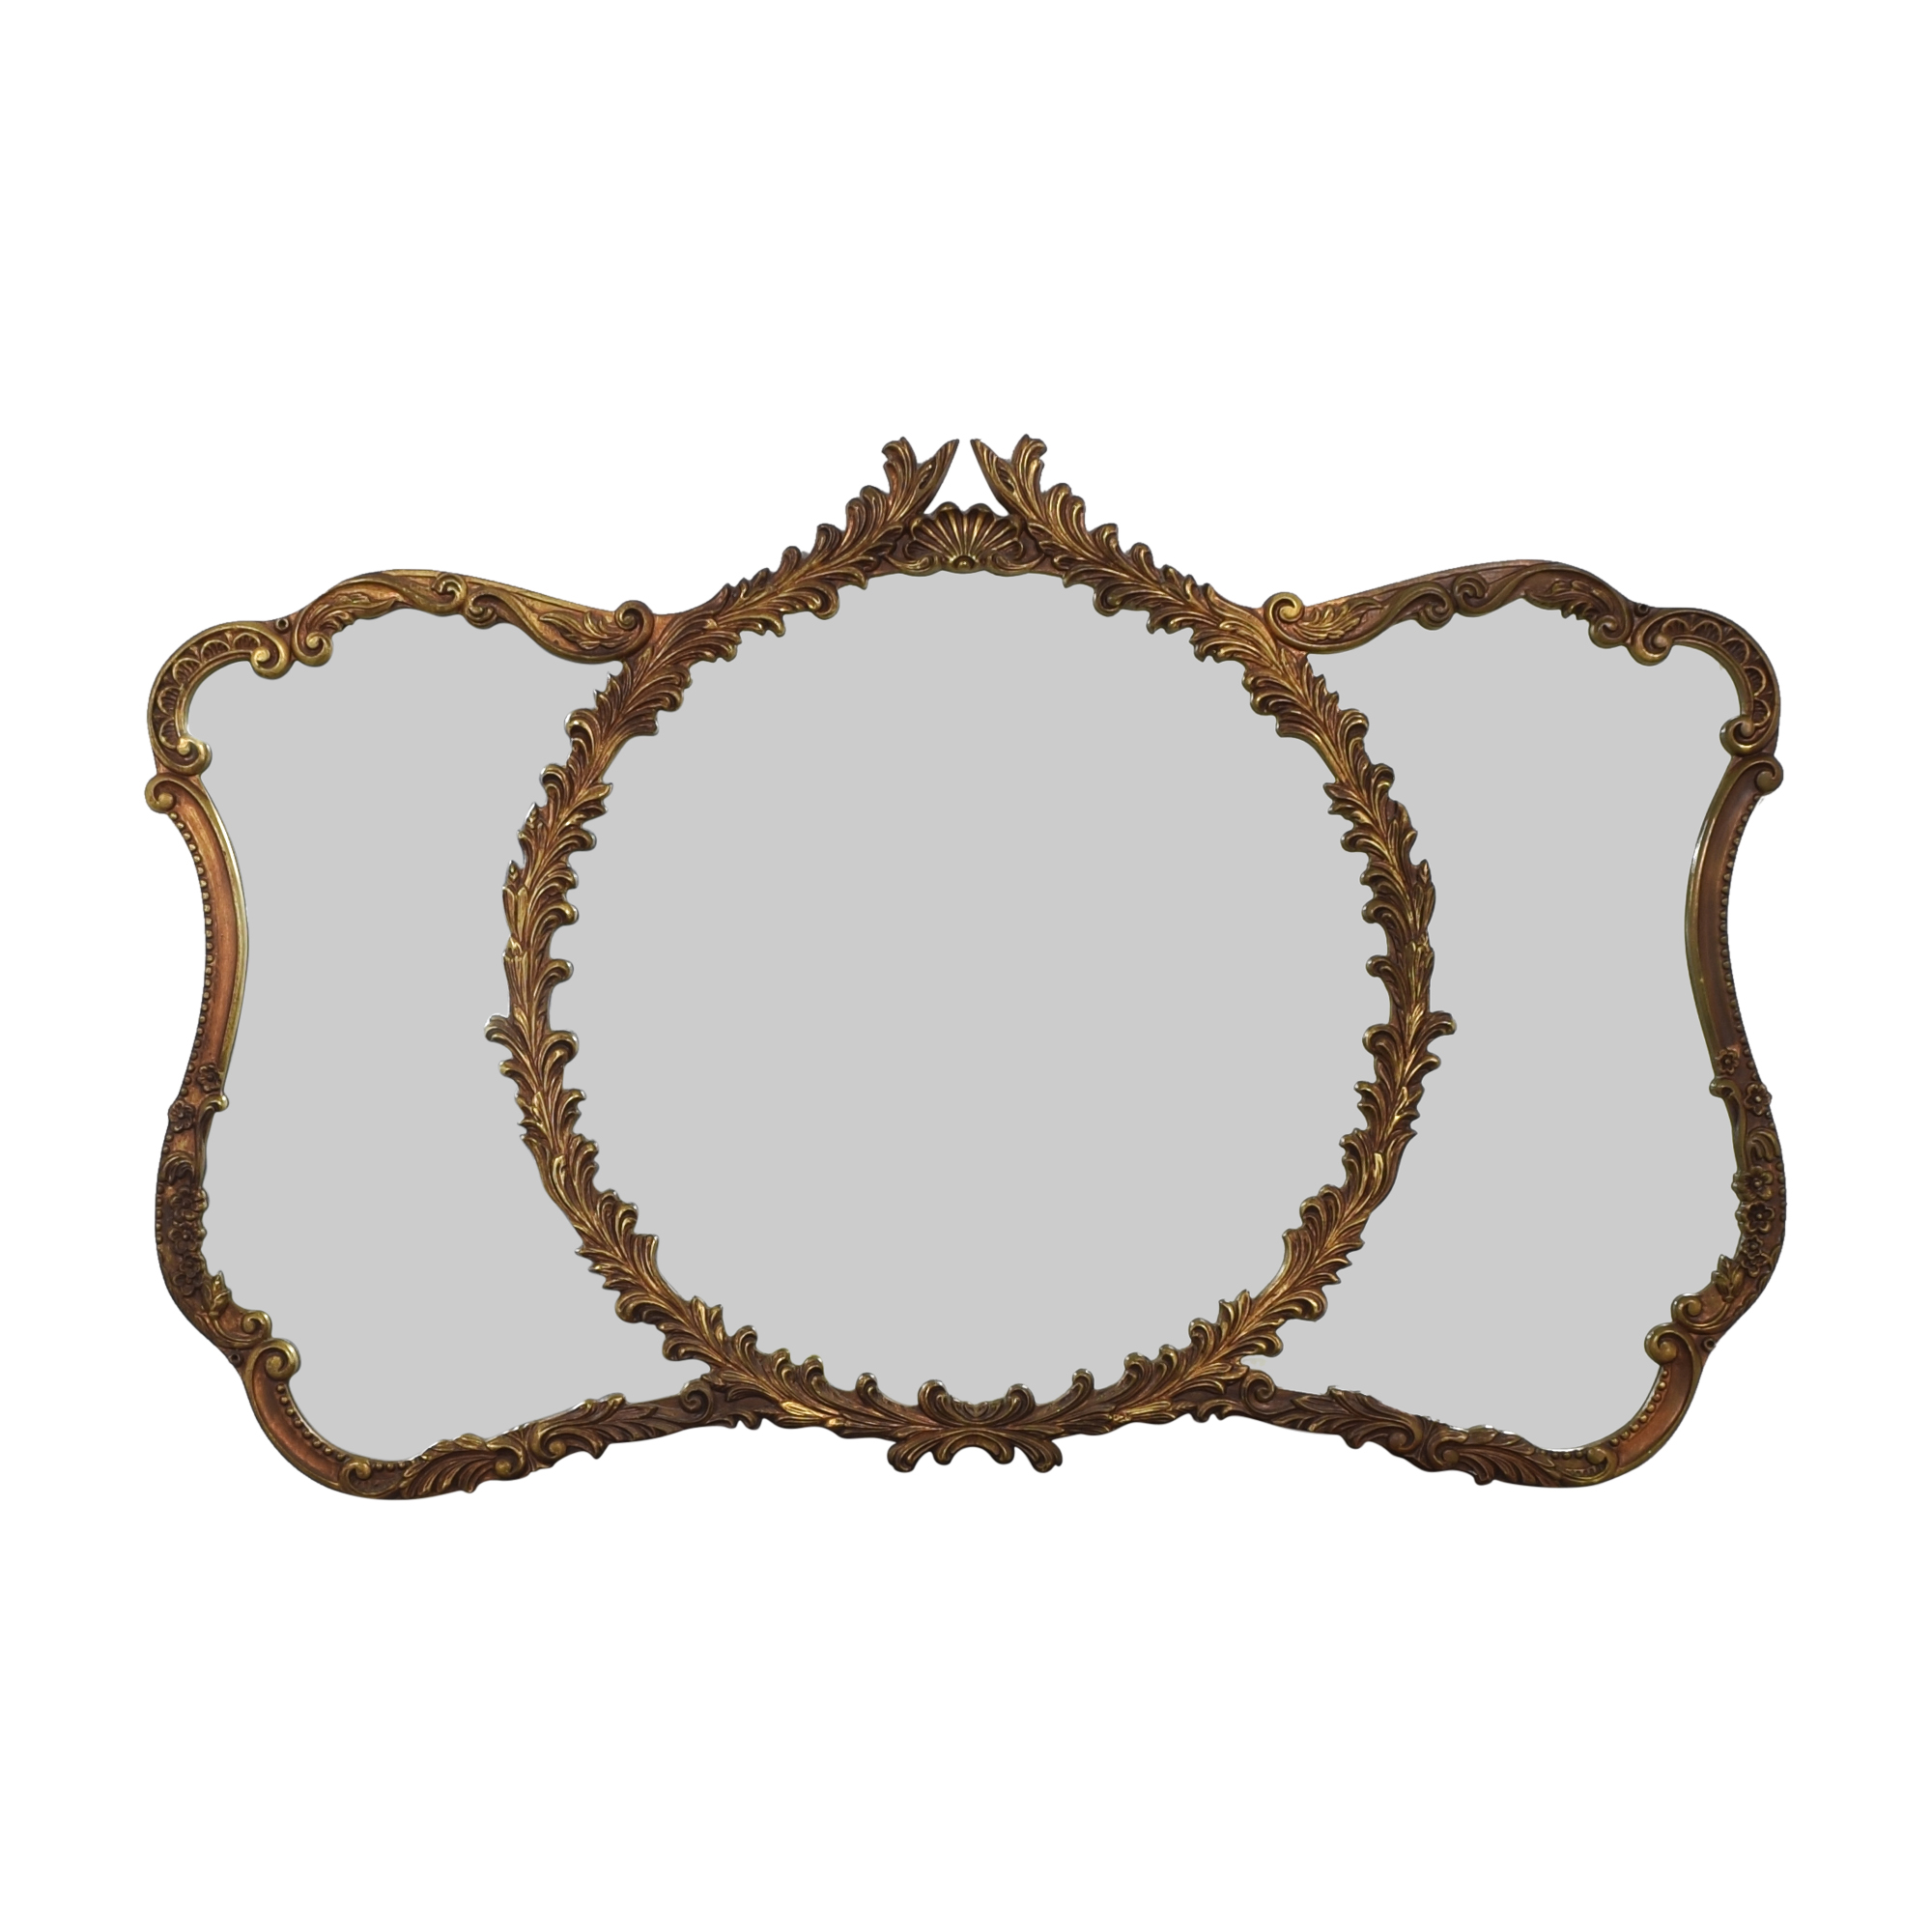 Union City Mirror & Table Co. Carved Wall Mirror / Decor